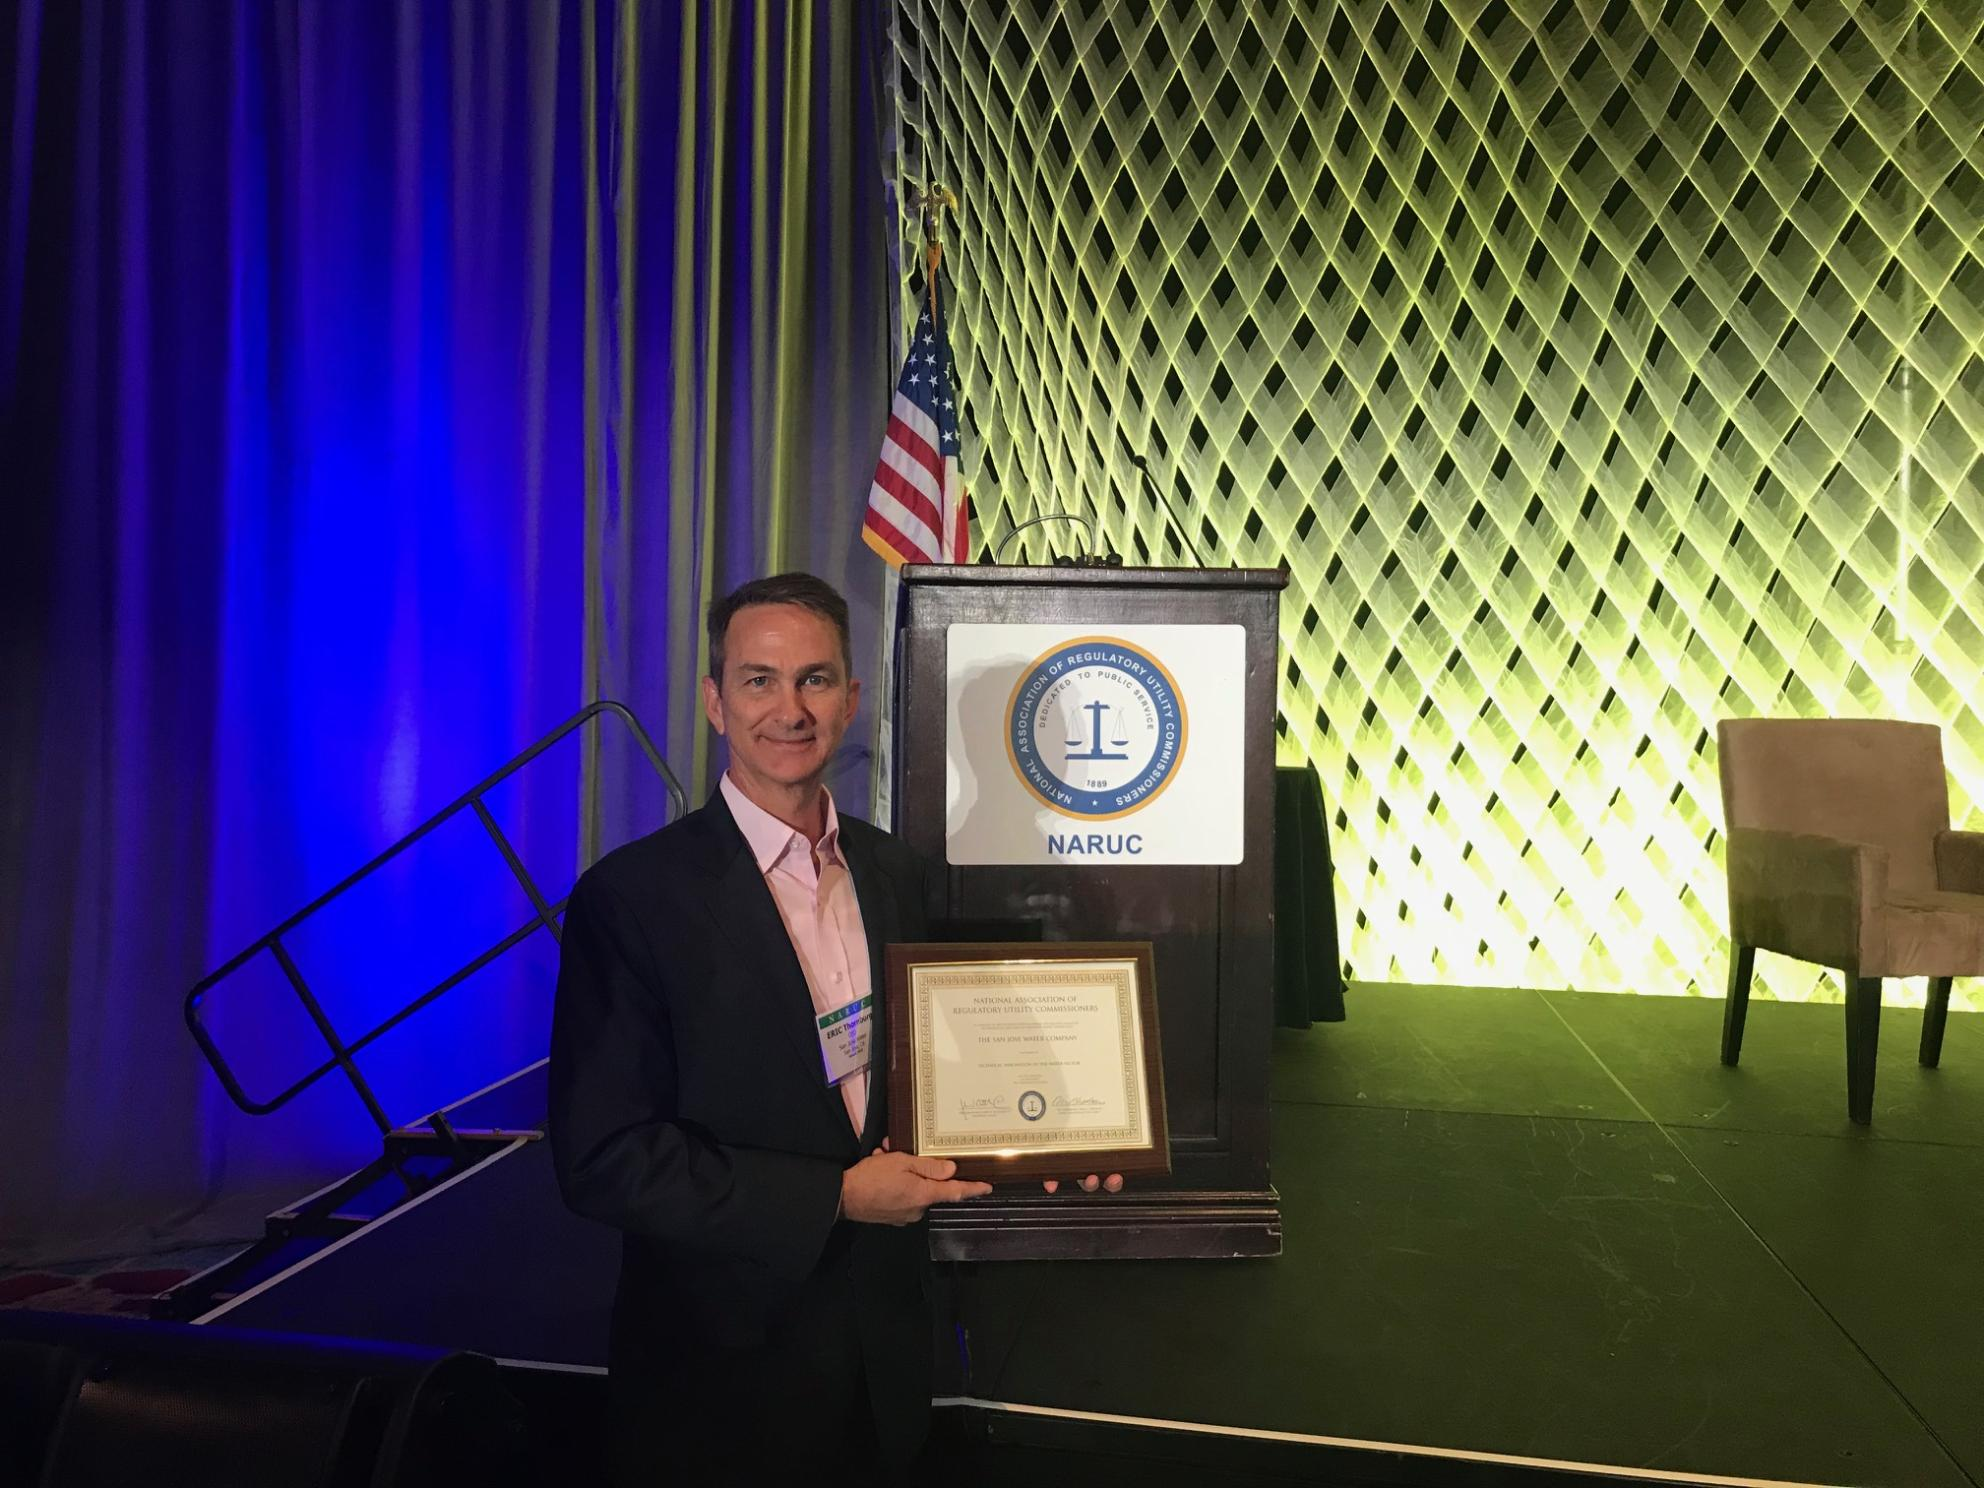 San Jose Water CEO Eric W. Thornburg holding NARUC Award